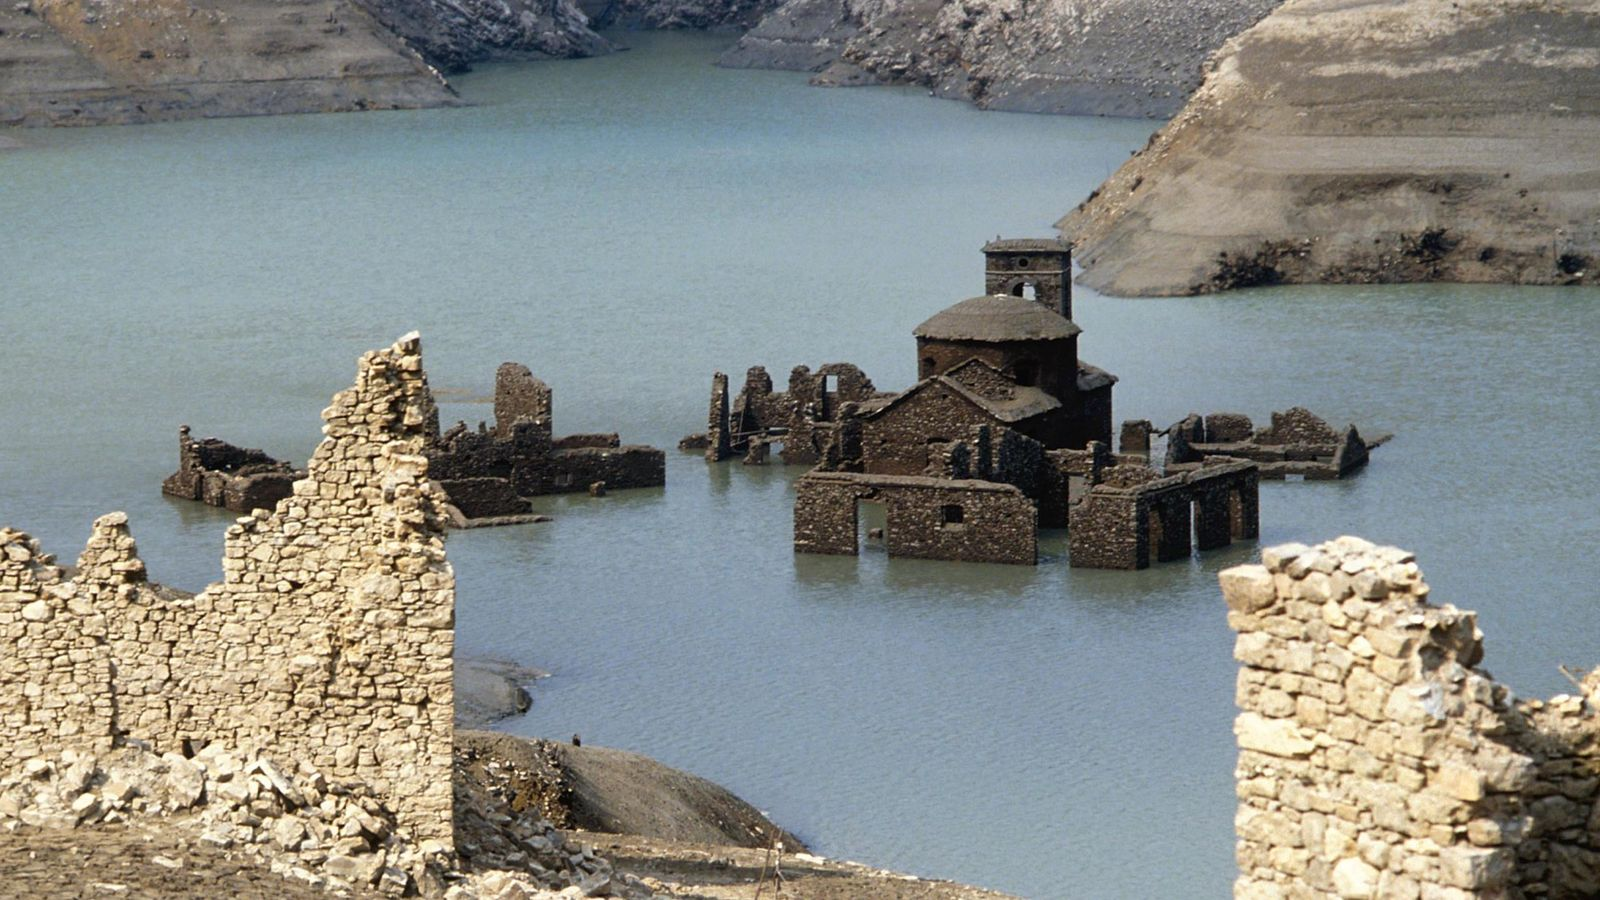 Fabbriche di Careggine: Ancient village submerged since 1994 could ...